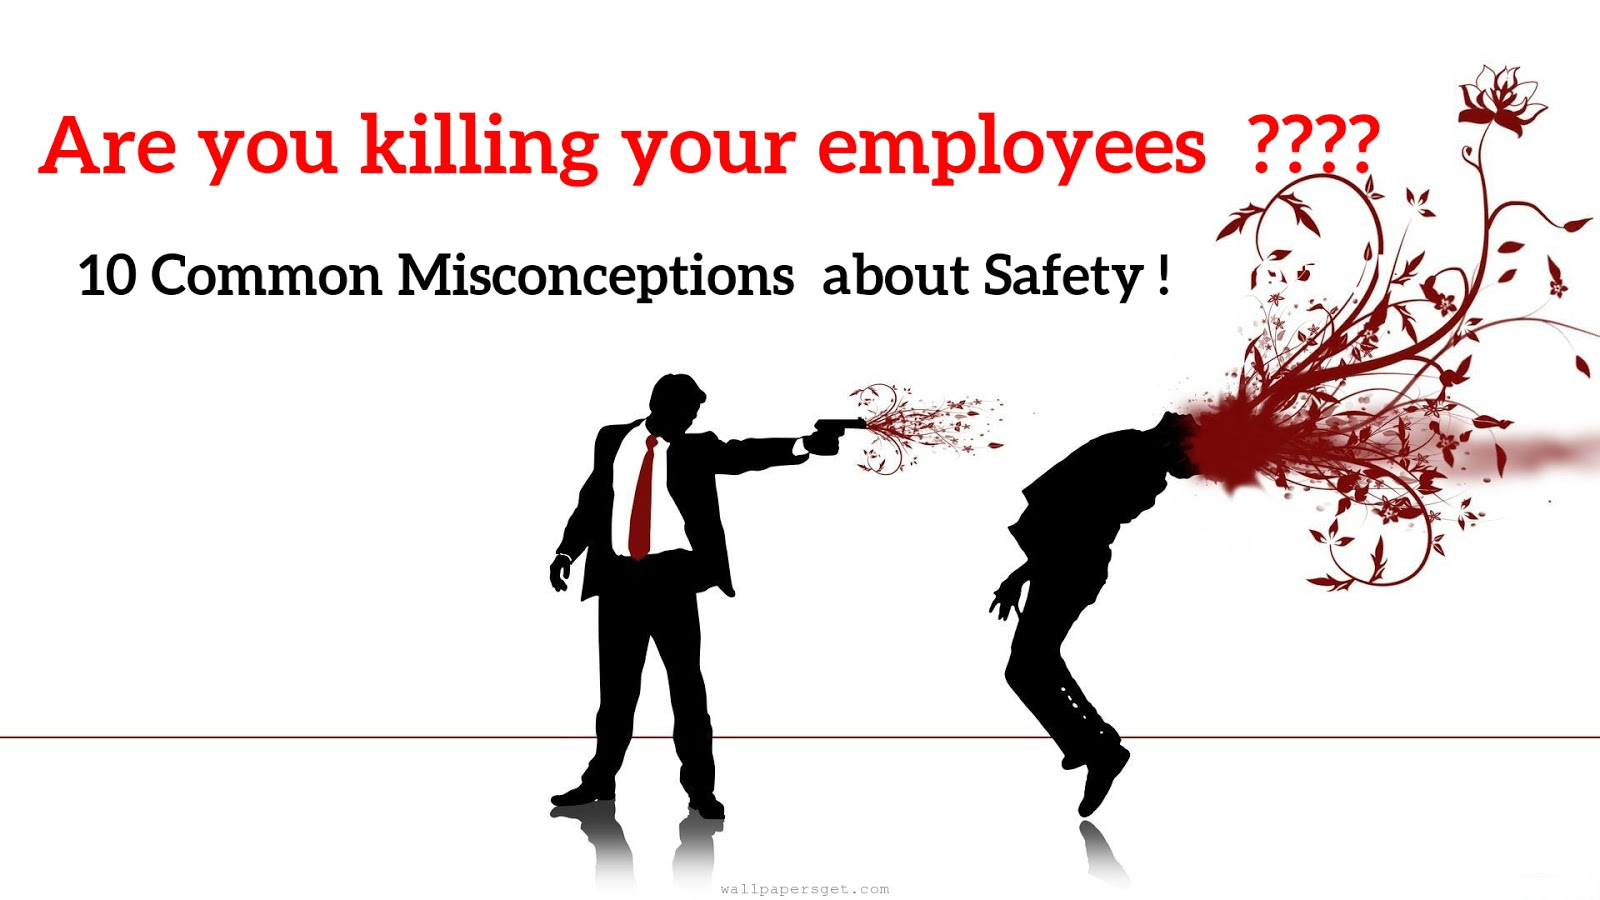 Are You Killing Your Employees